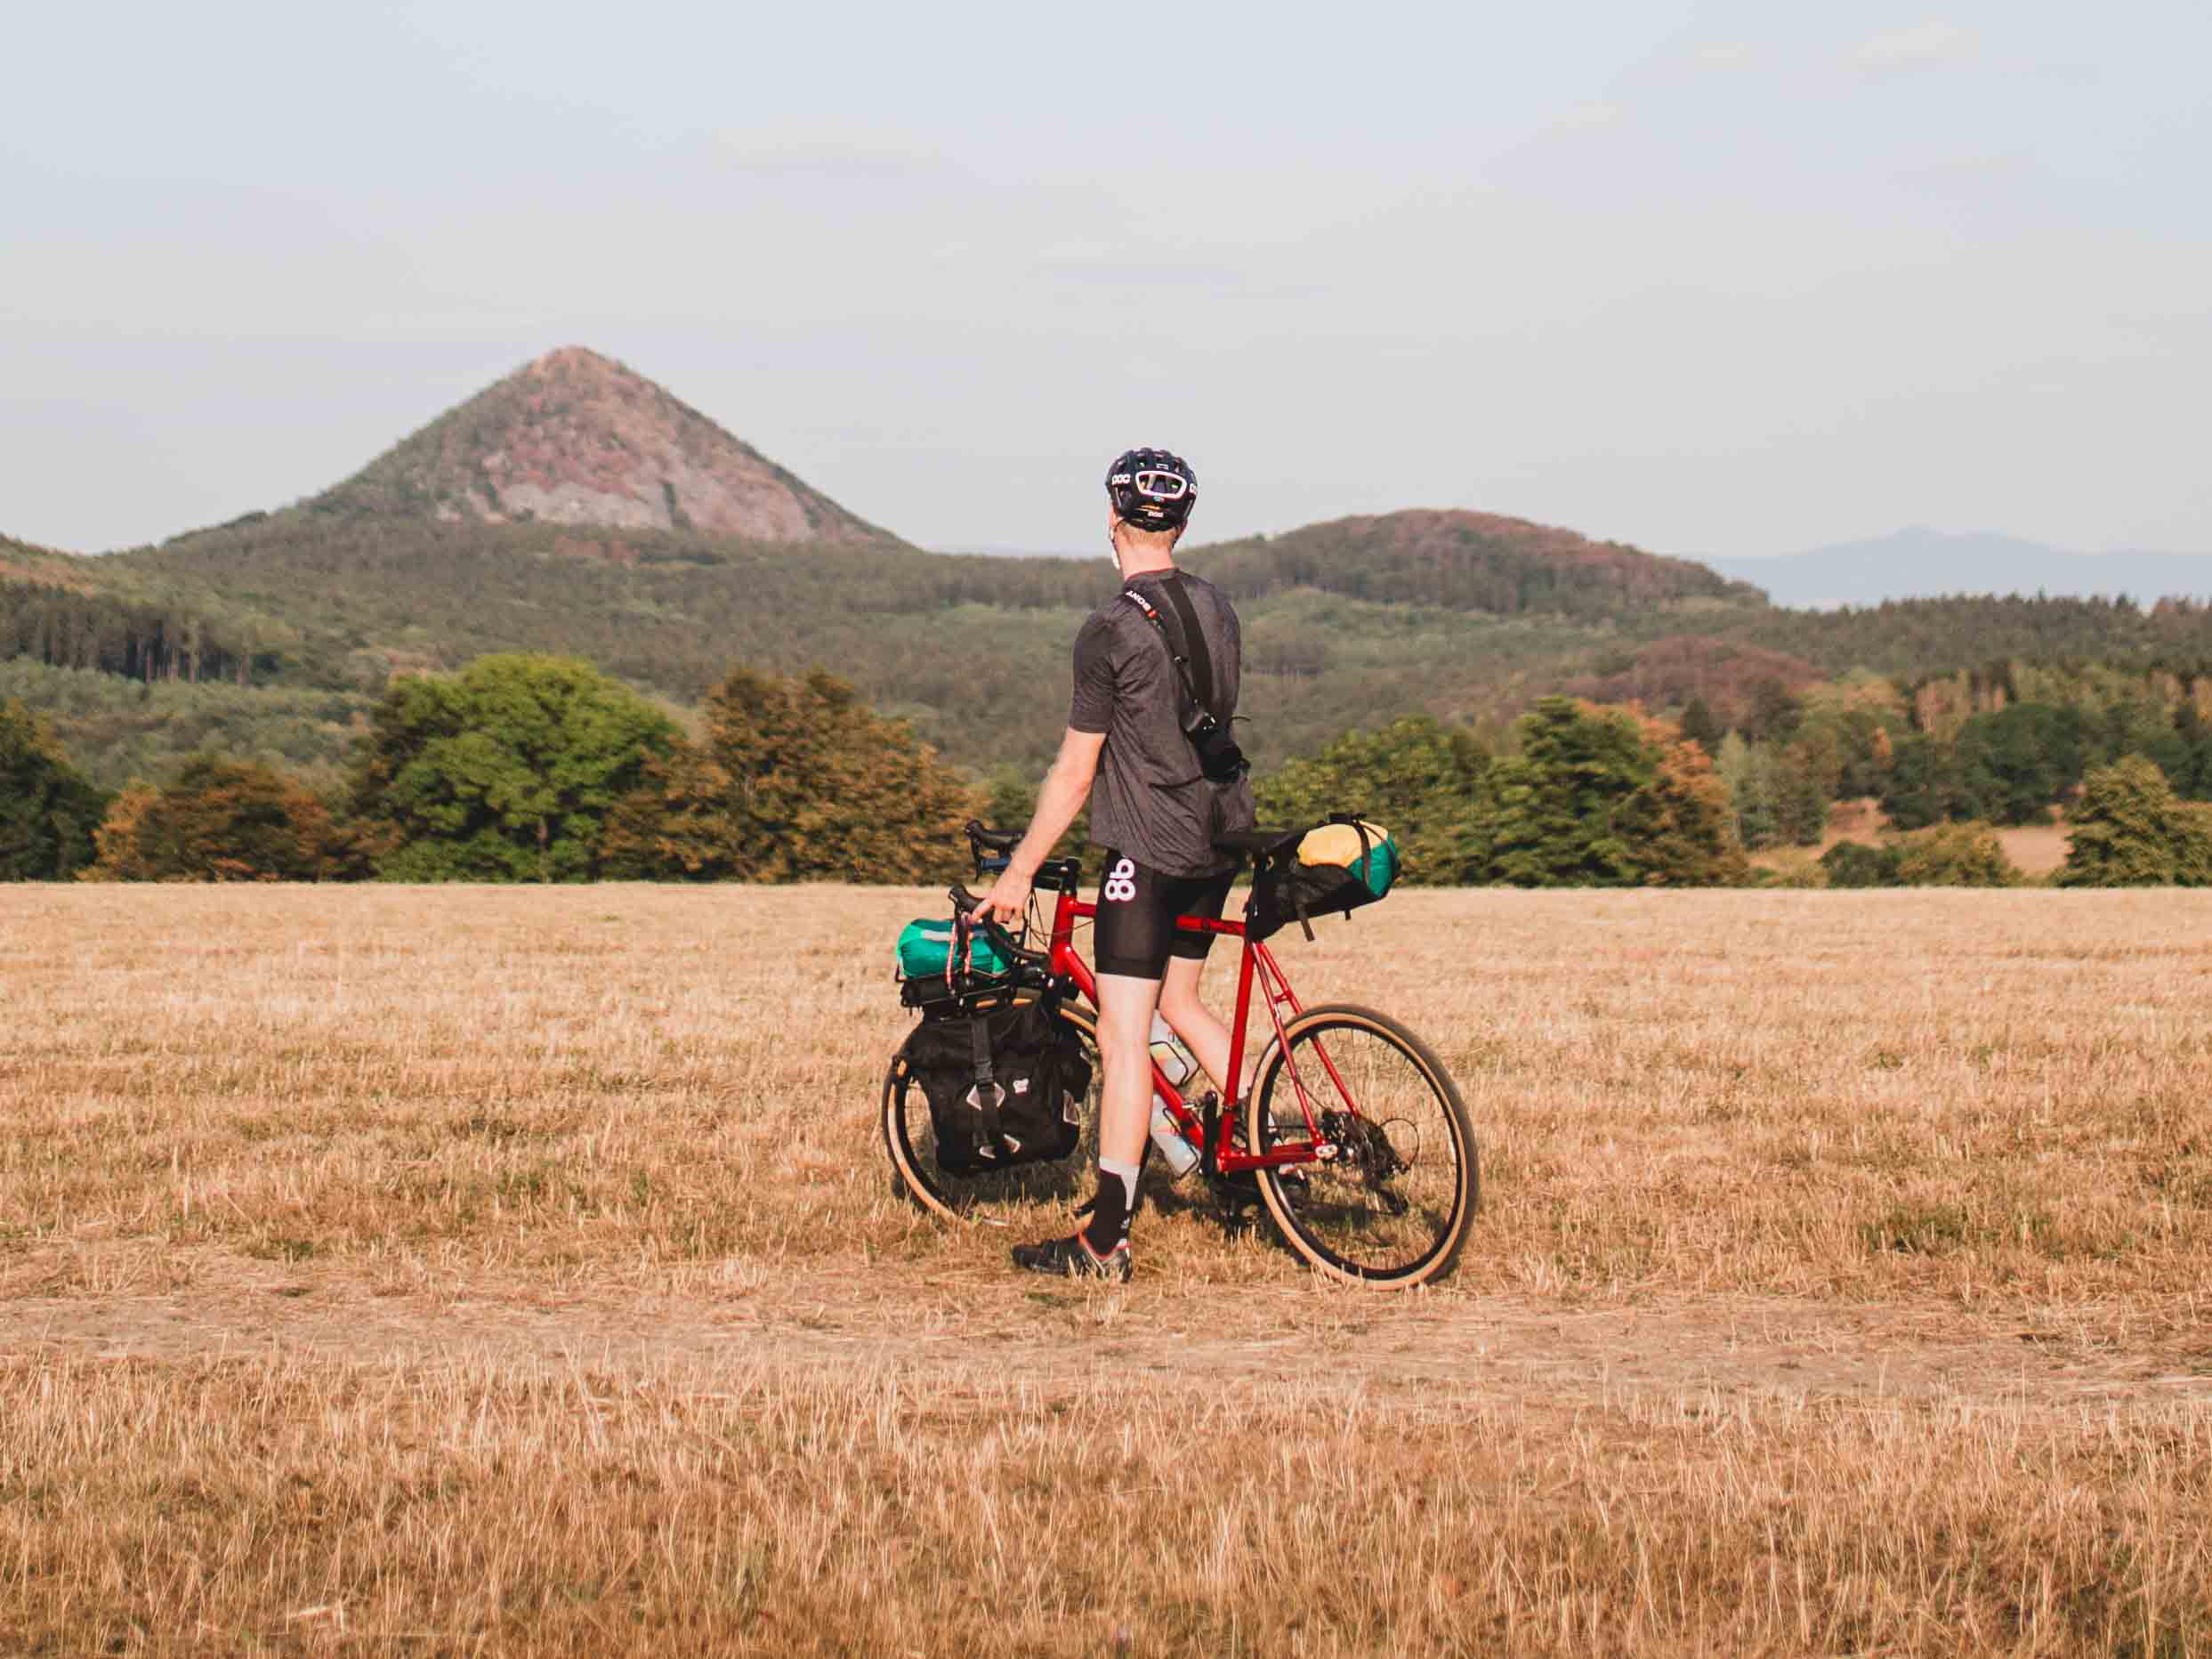 A cyclist is standing in the middle of a field on his bicycle while looking at the landscape, composed of hills and fields